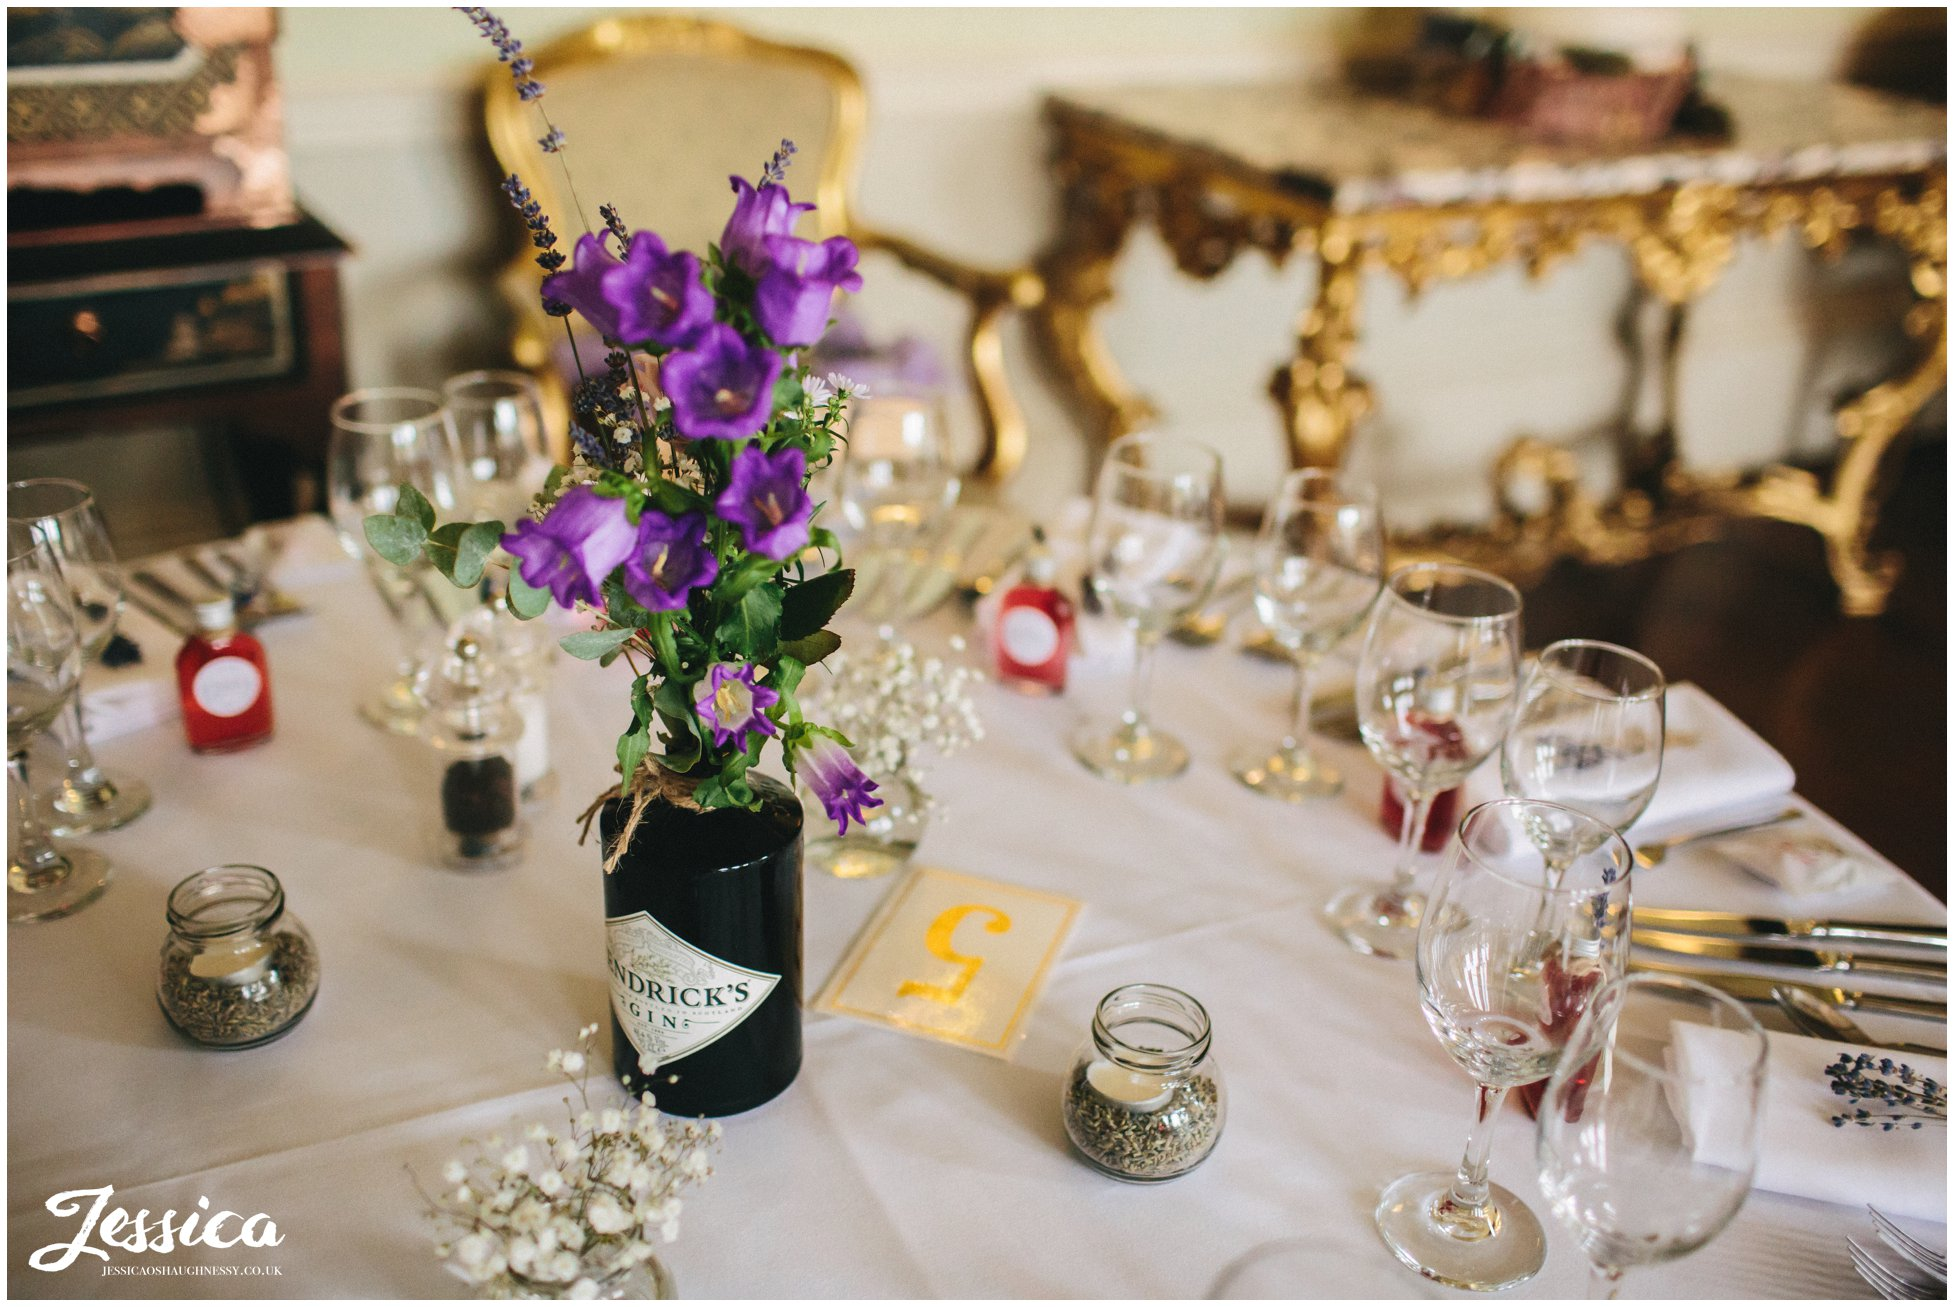 wedding table details ready for guests